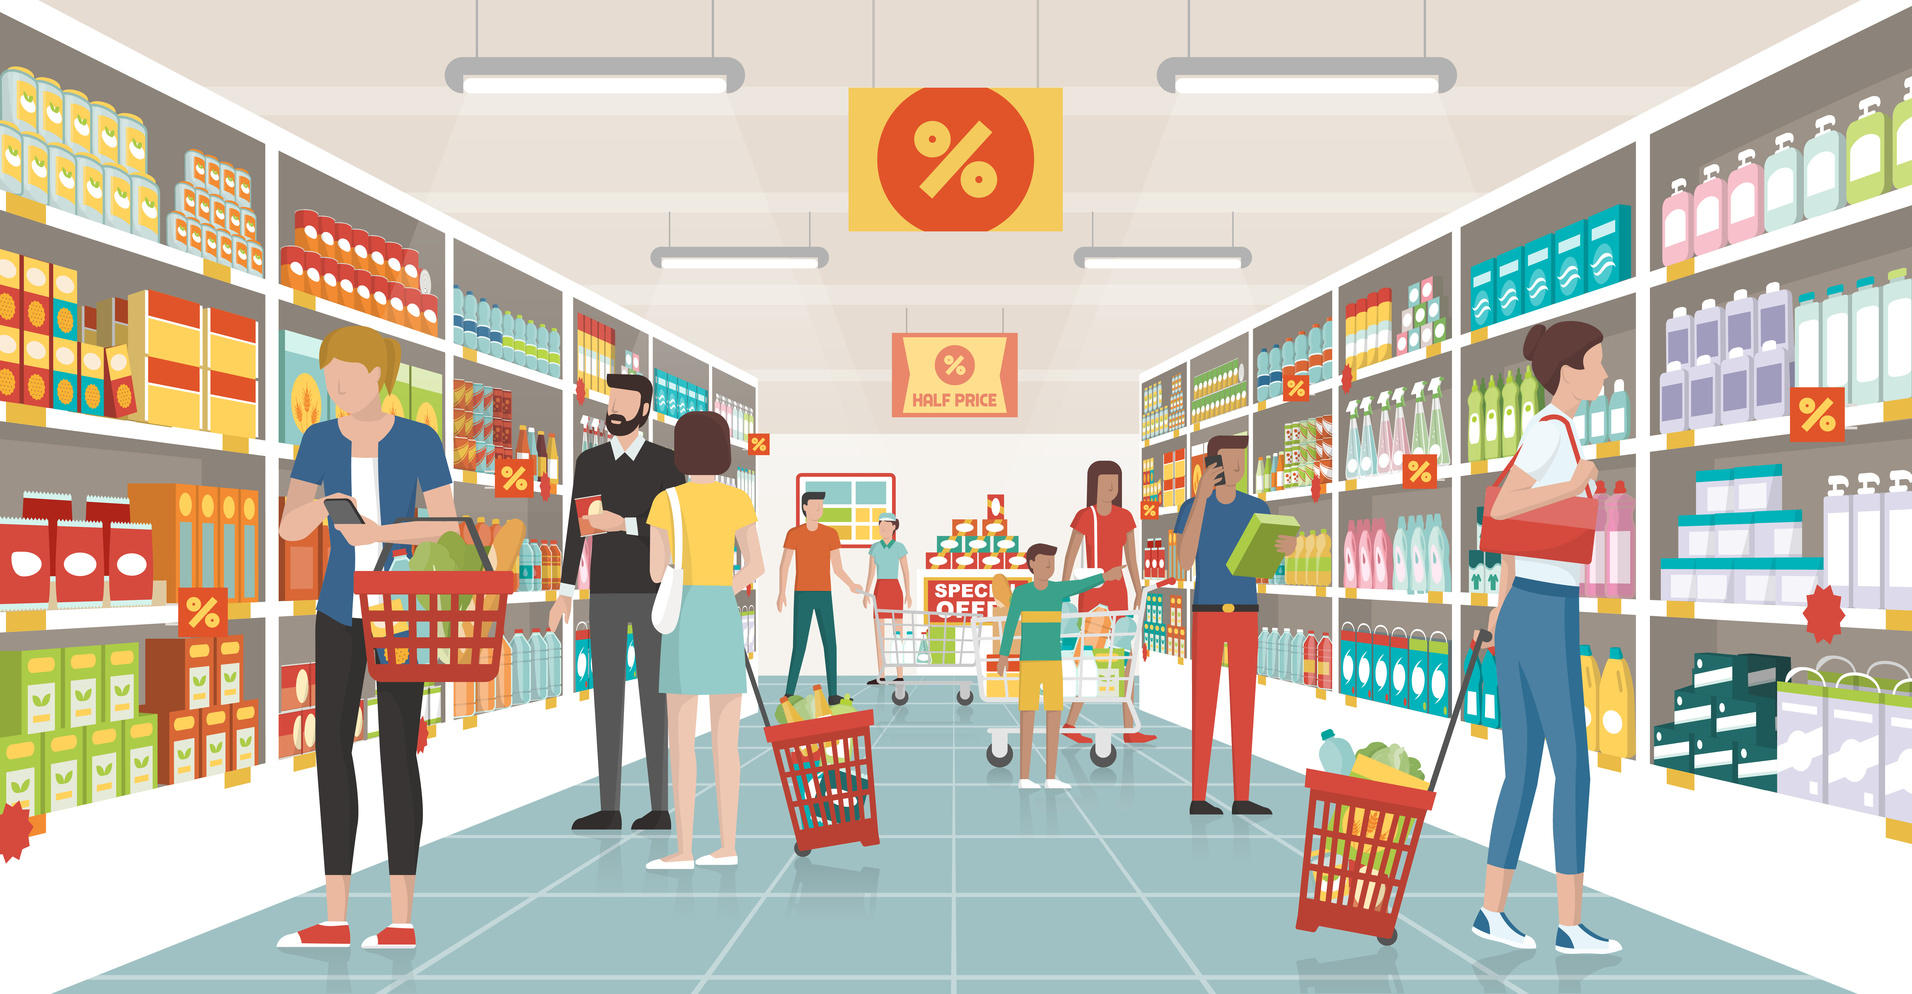 Musical chair game rules - Grocery Market Trends A Game Of Musical Chairs